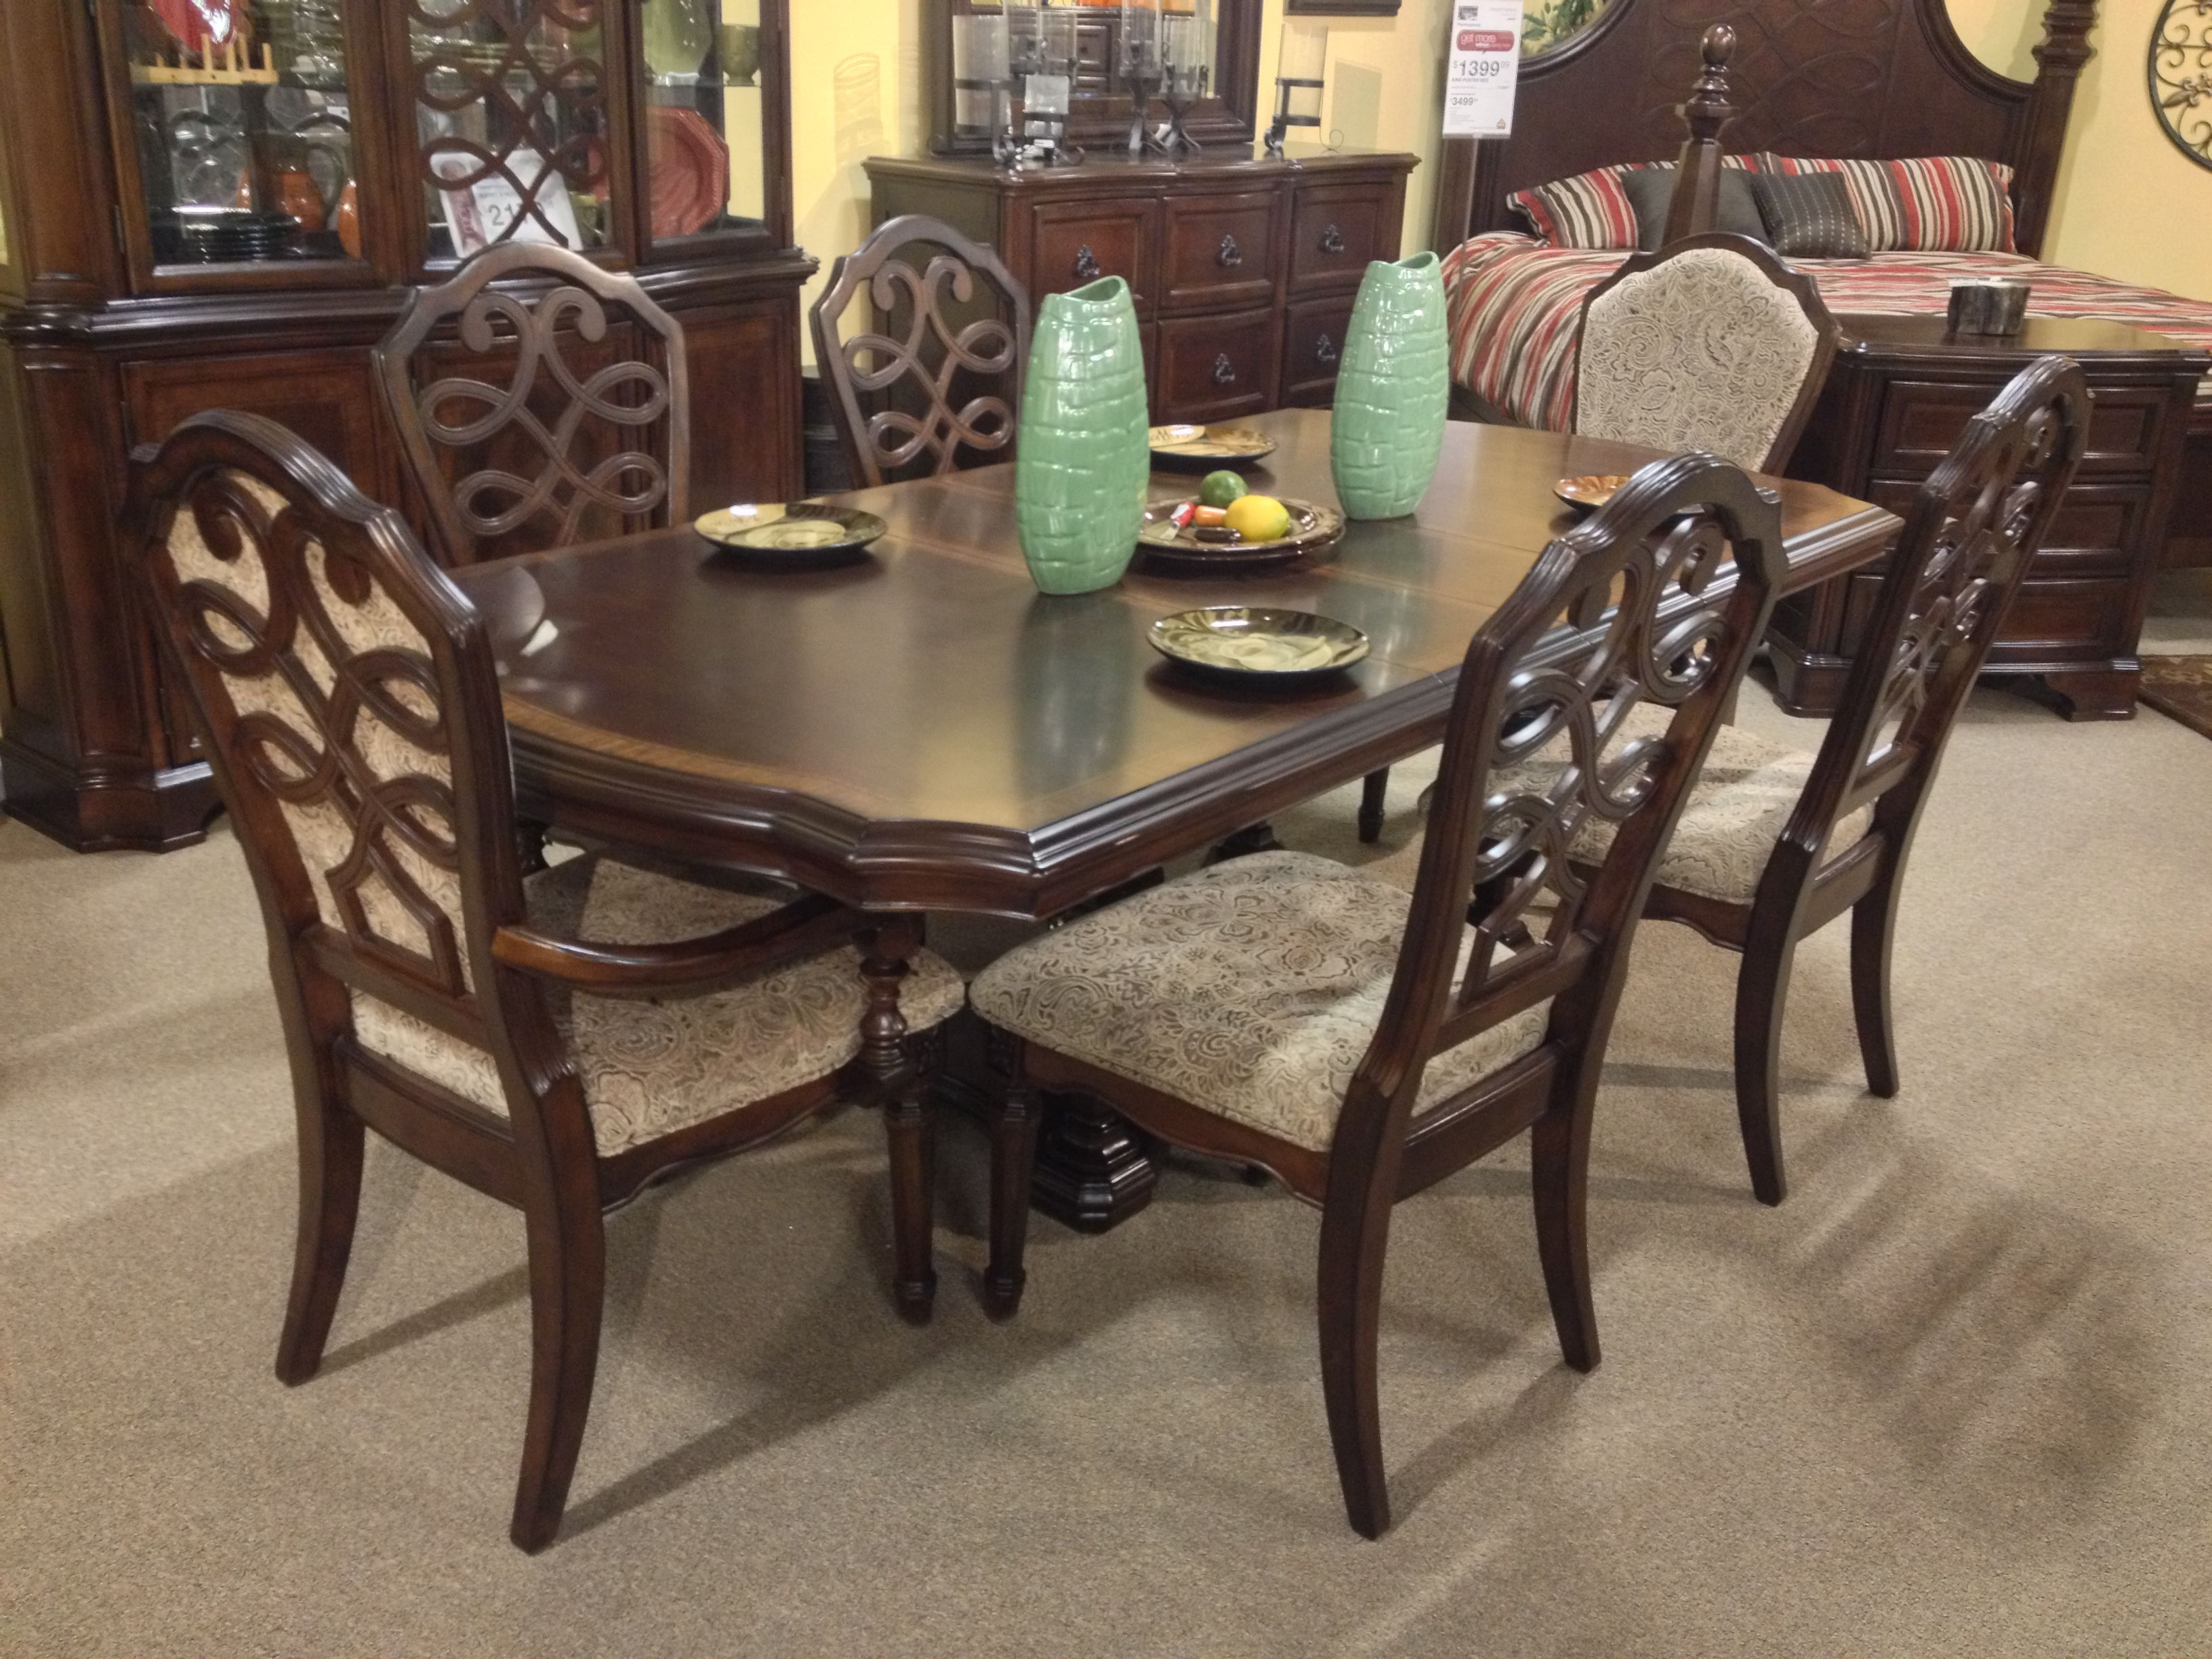 Flemingsburg 7 Piece Dining Room Set Ashley Furniture In TriCities Traditional Classic